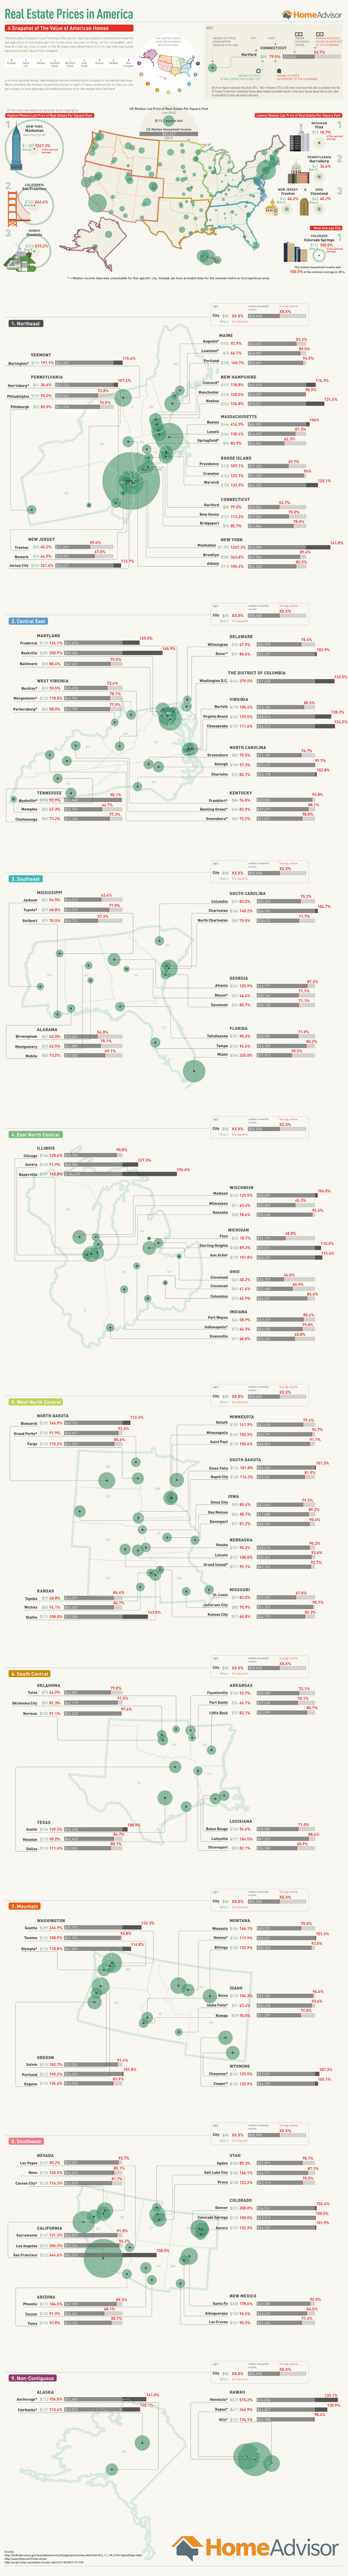 Real Estate Prices in America - HomeAdvisor.com - Infographic